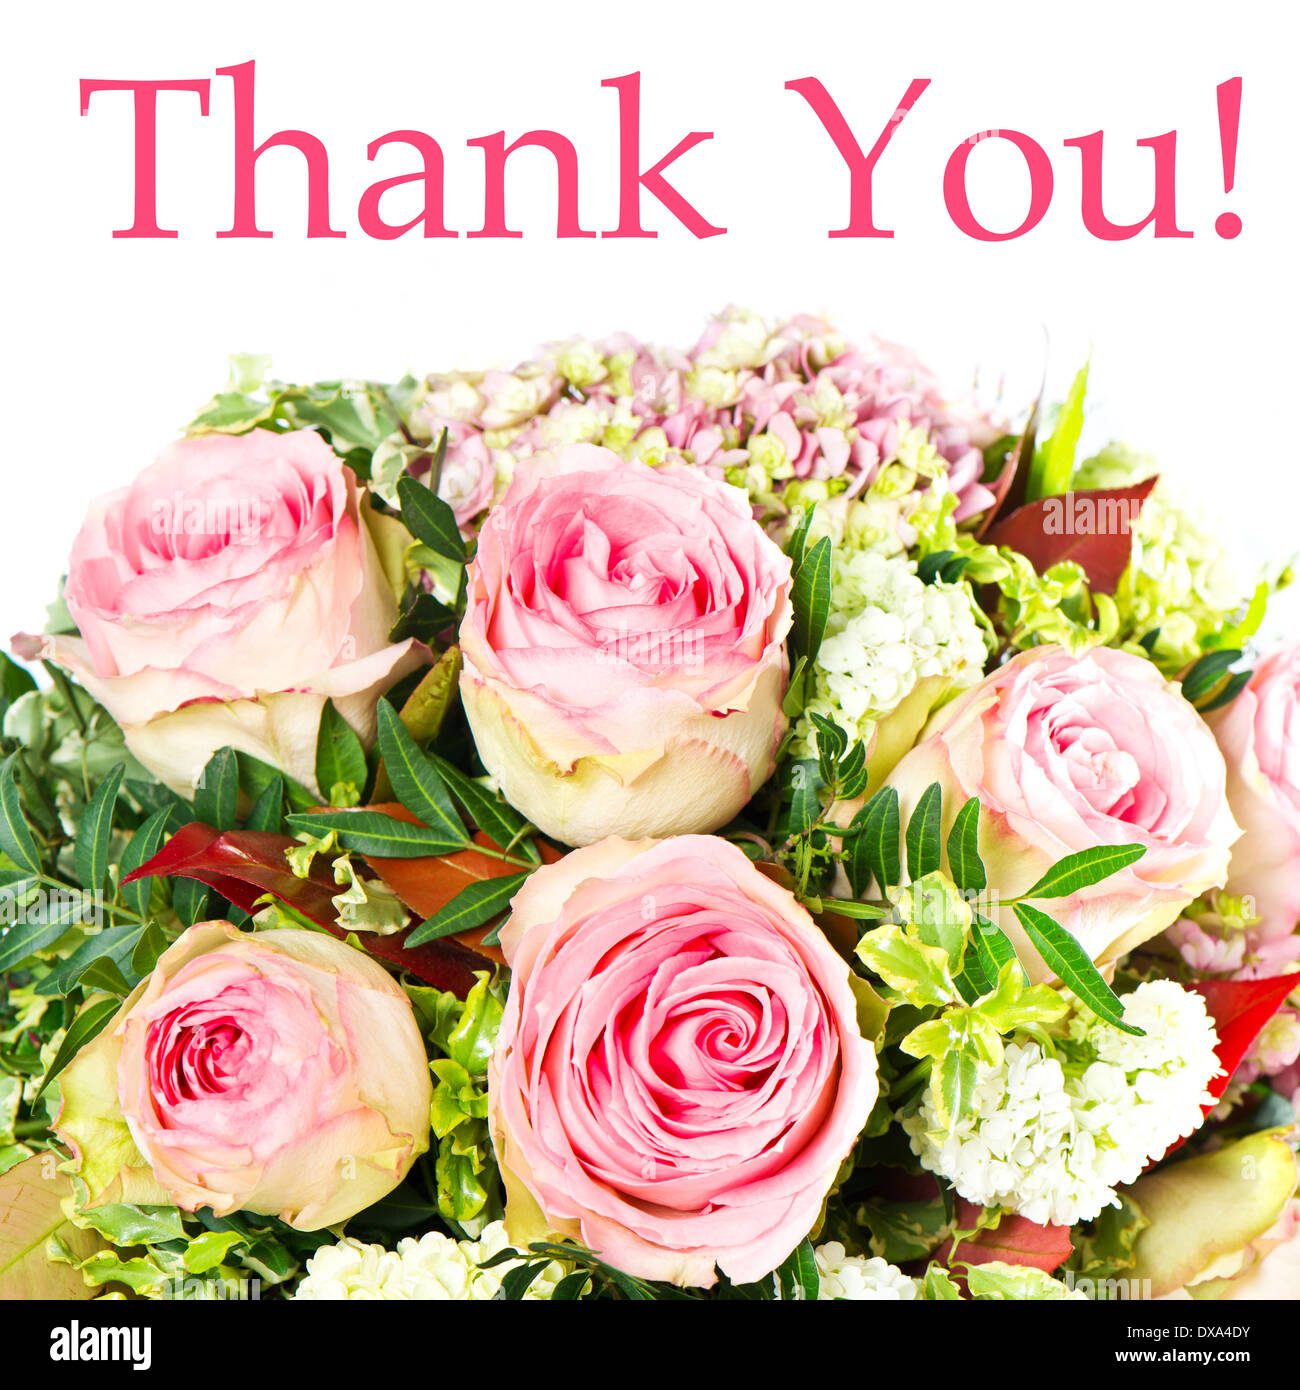 Thank You Card Concept Bouquet Of Pink Roses Stock Photo 67835207